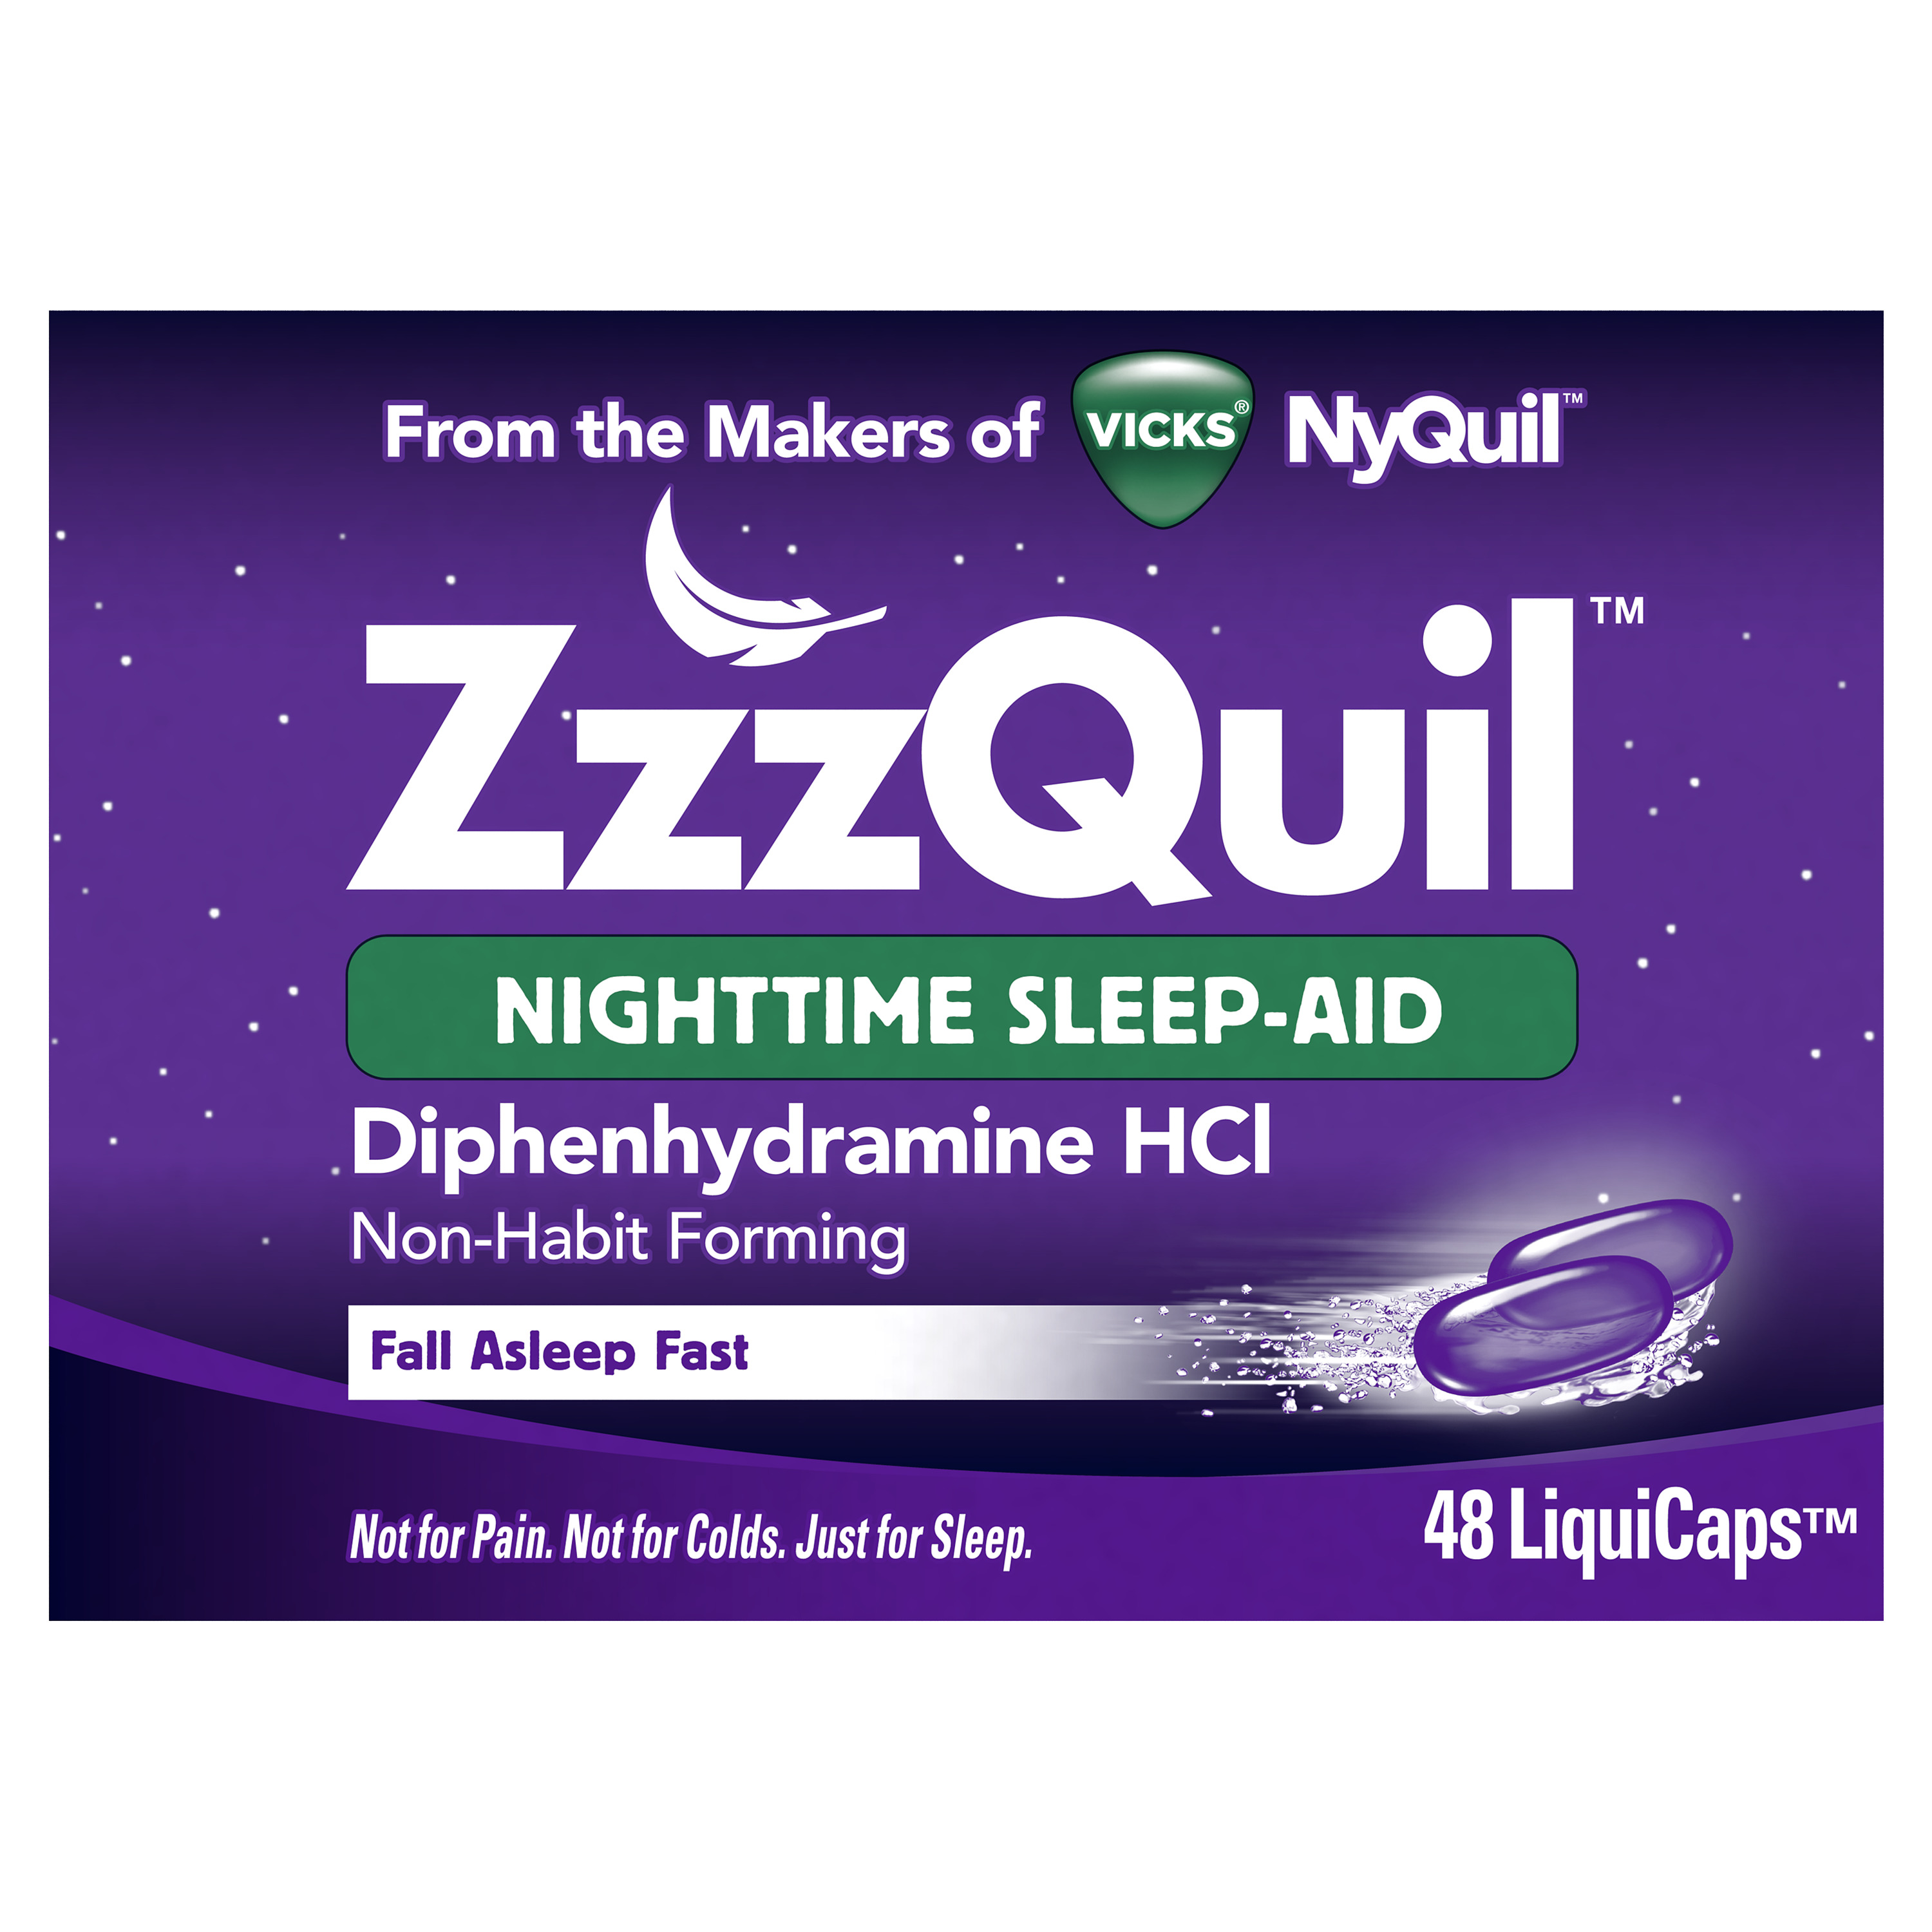 ZzzQuil Nighttime Sleep Aid LiquiCaps, 48 count